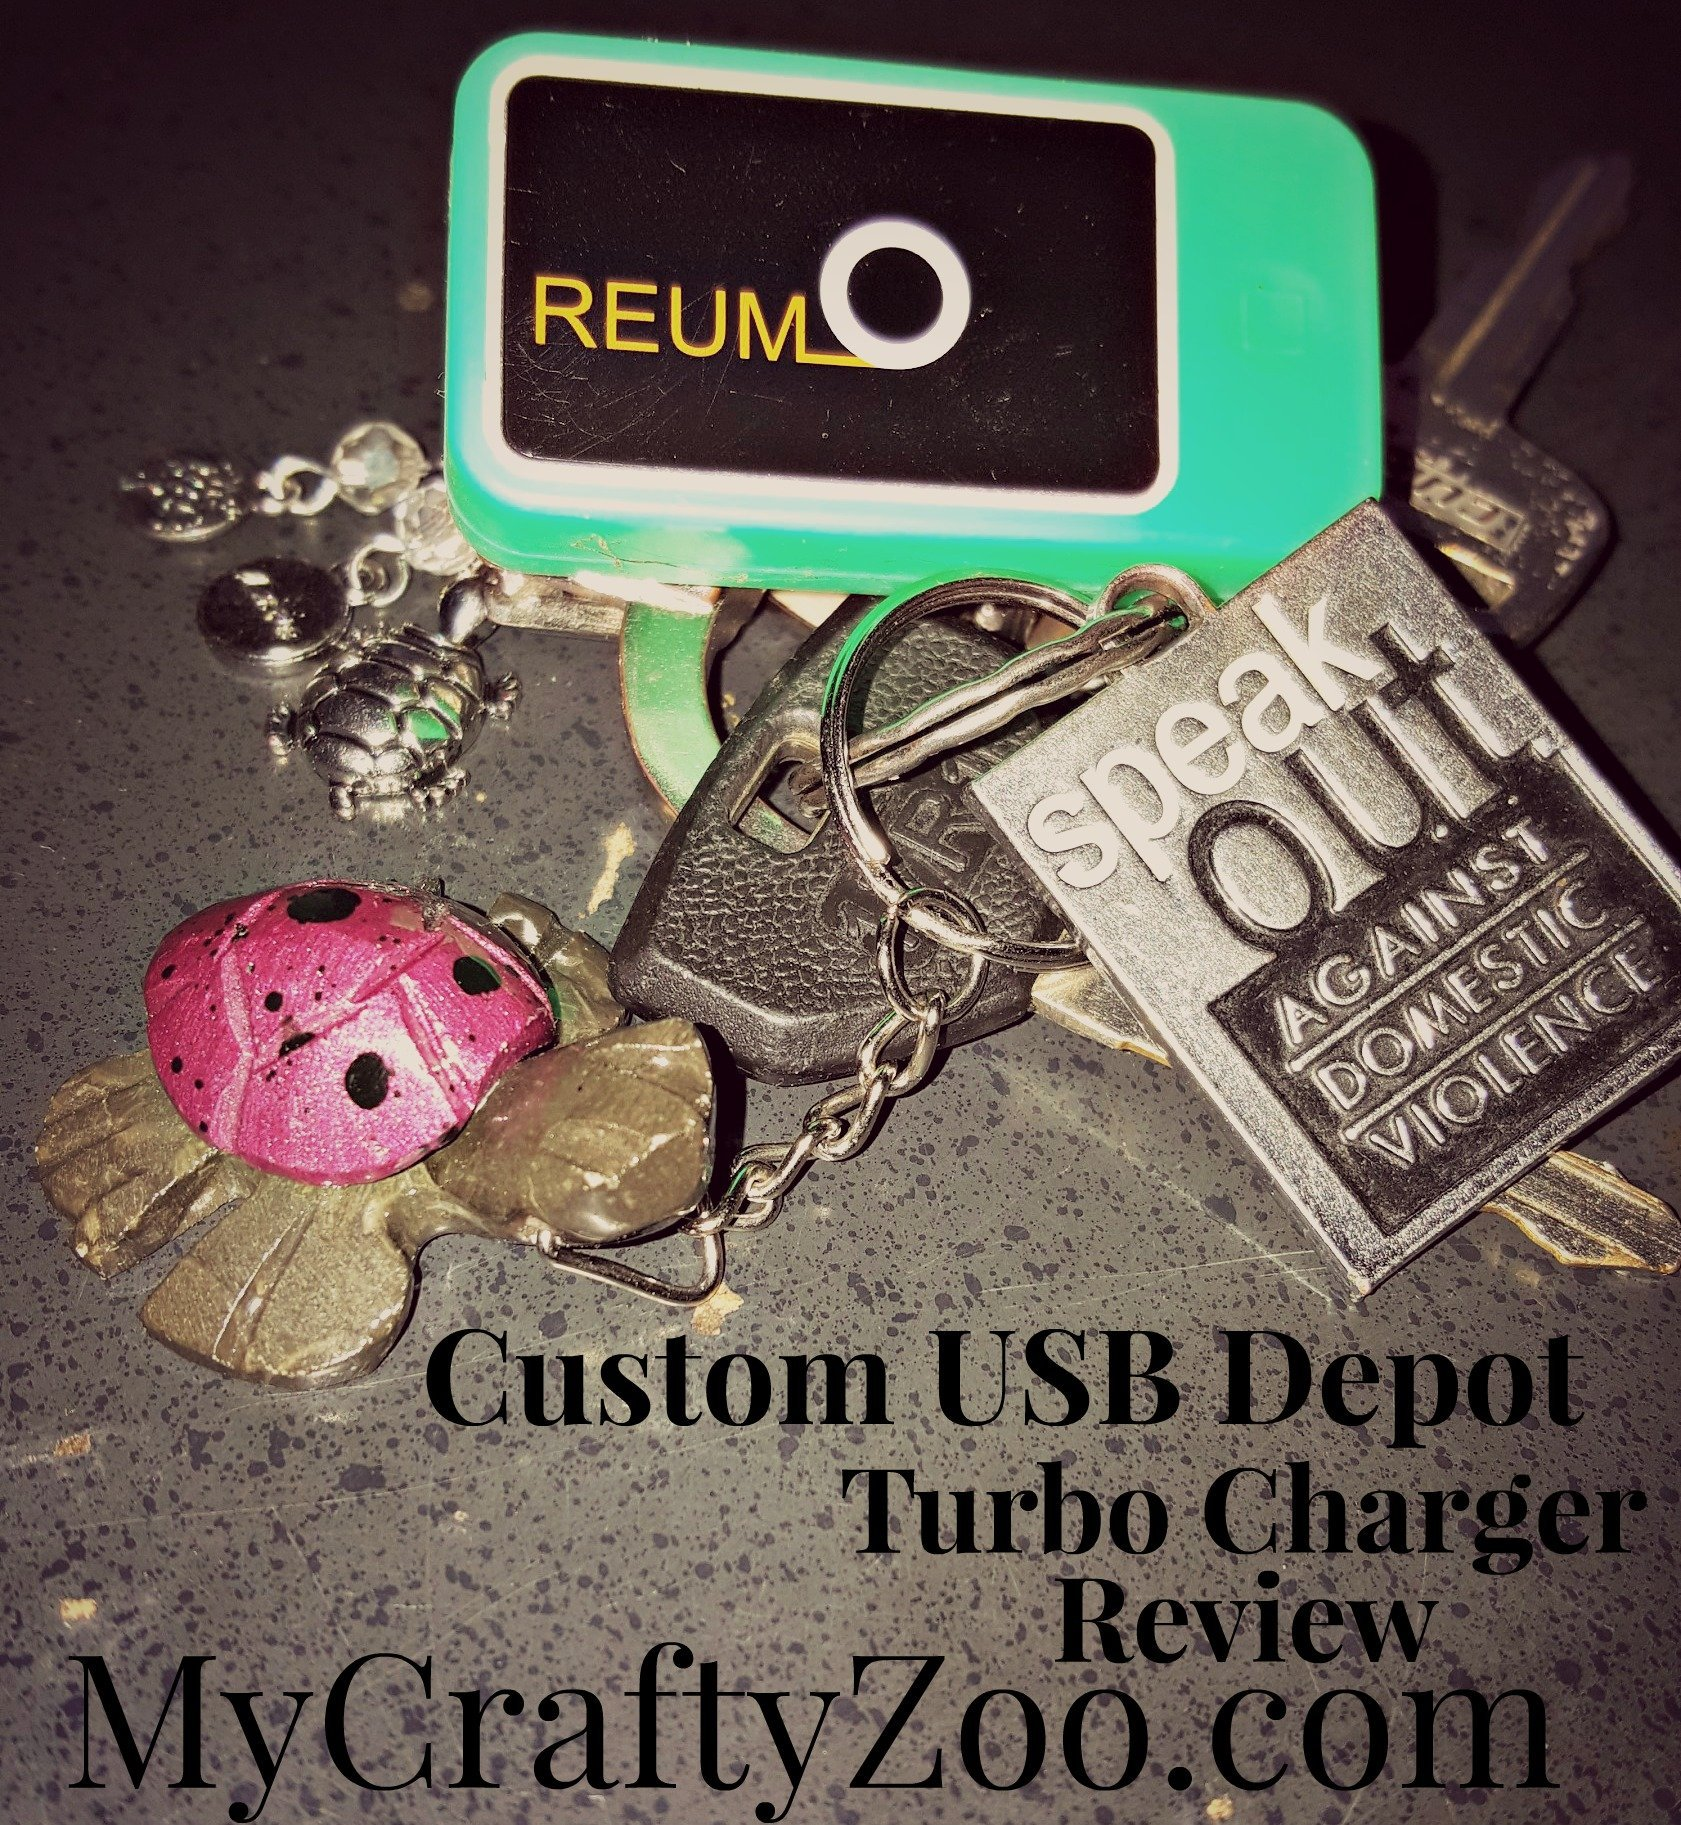 CustomUSBDepot Turbo Charger Review